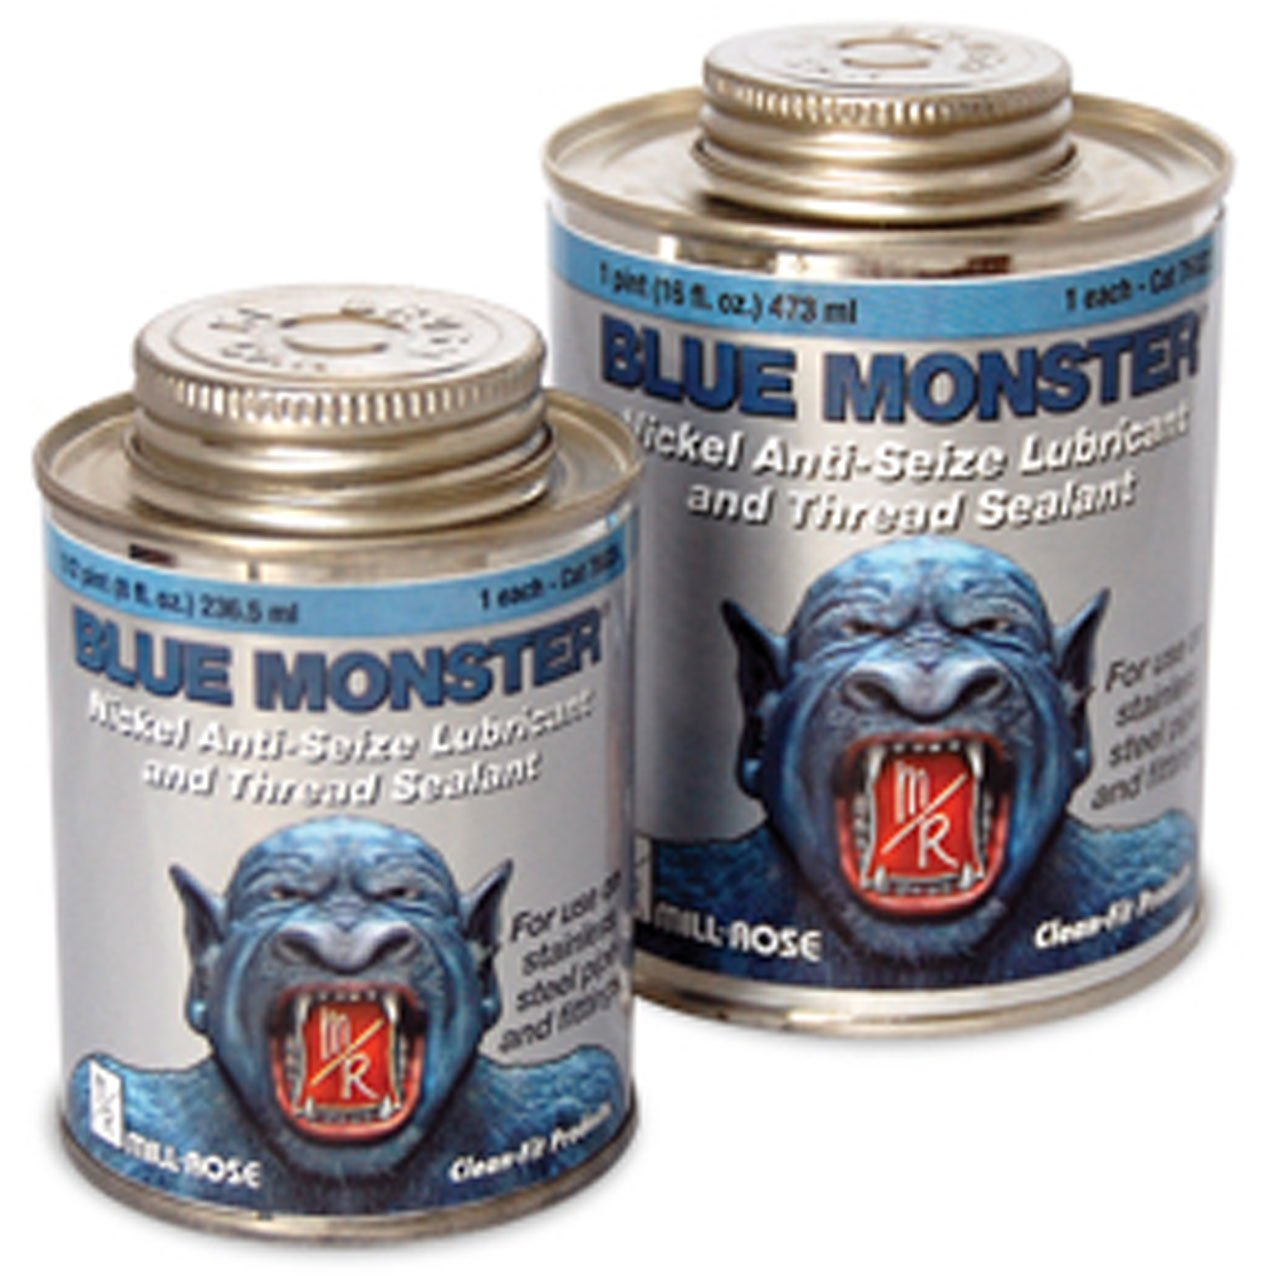 Millrose 76022 Monster Nickel Anti-Seize Lubricant, 16-Ounce, Blue